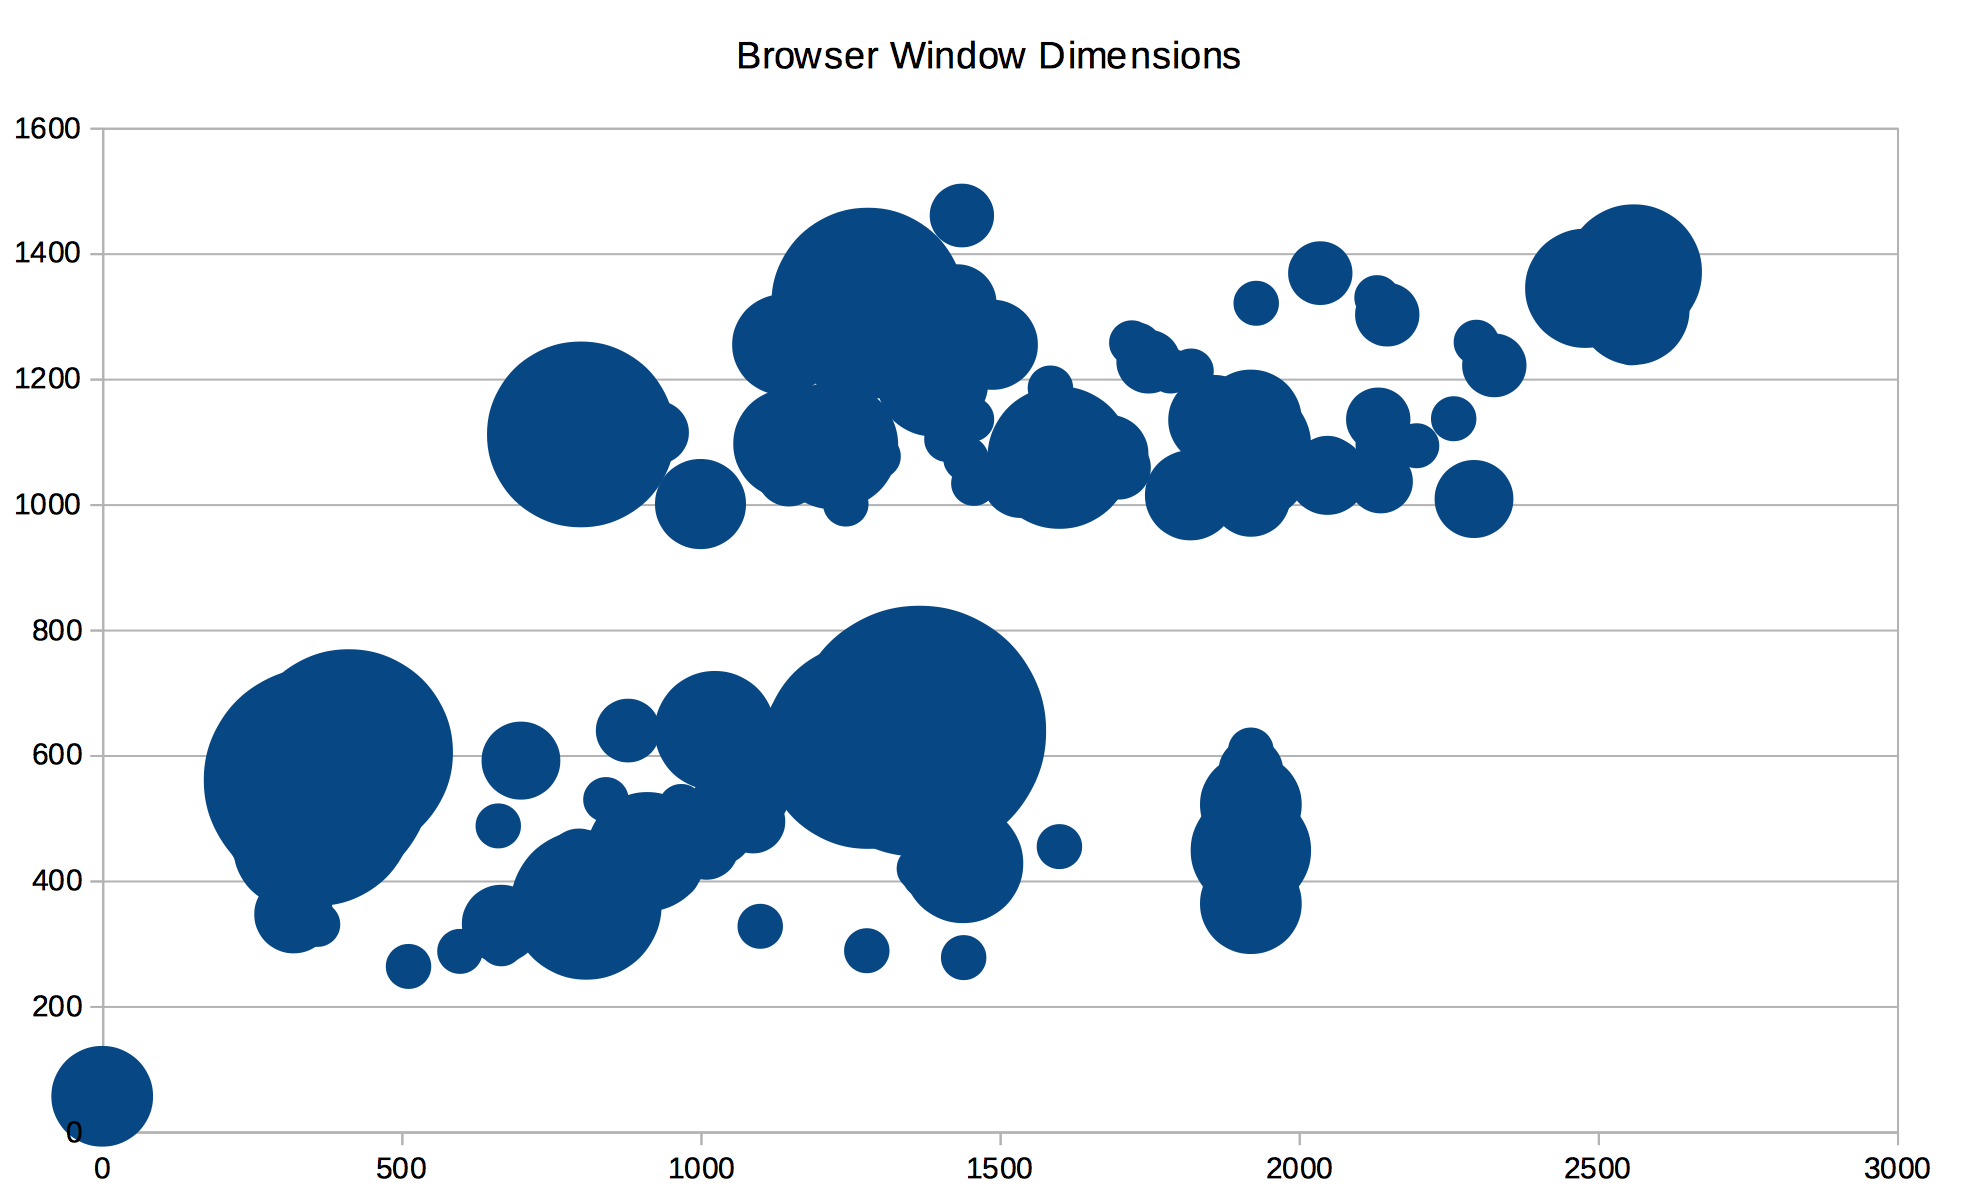 Browser window dimensions